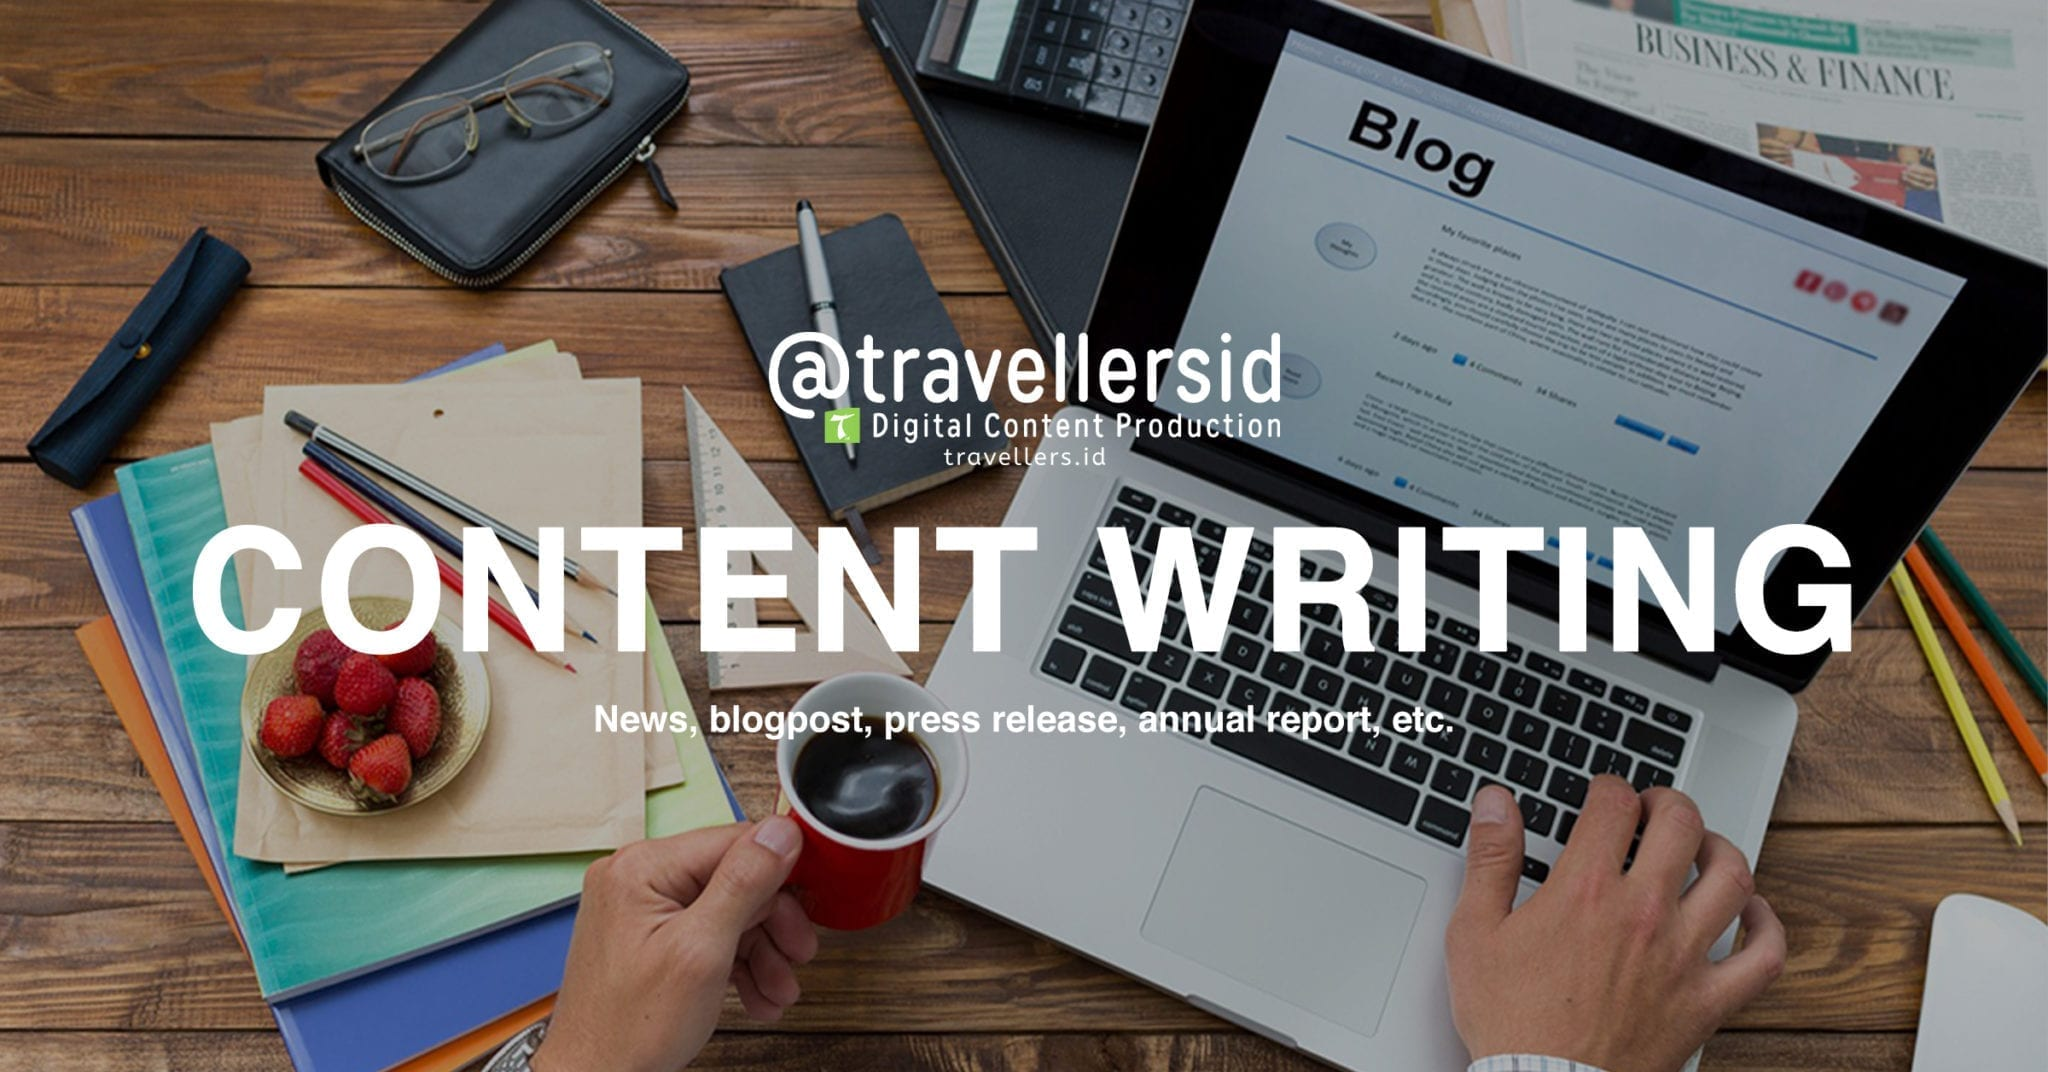 @TravellersID Content Writing Services